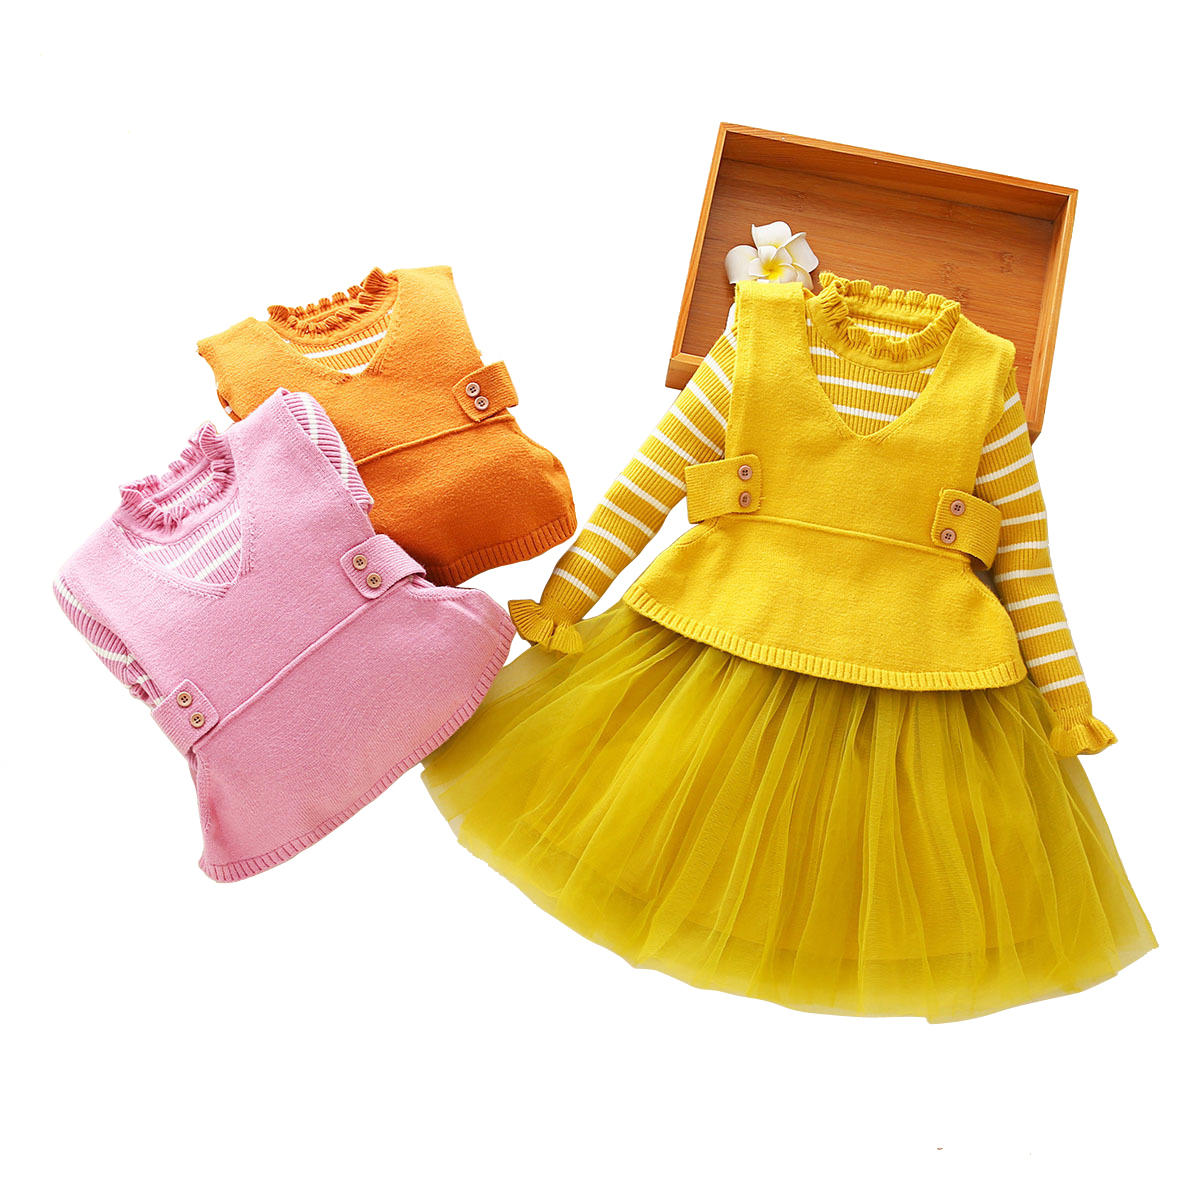 stripe party frocks for little girl spring thick warm knit tulle 2pcs set dresses  age 3-12 yrs baby girls long-sleeve dress+vest 81a29ea35b17